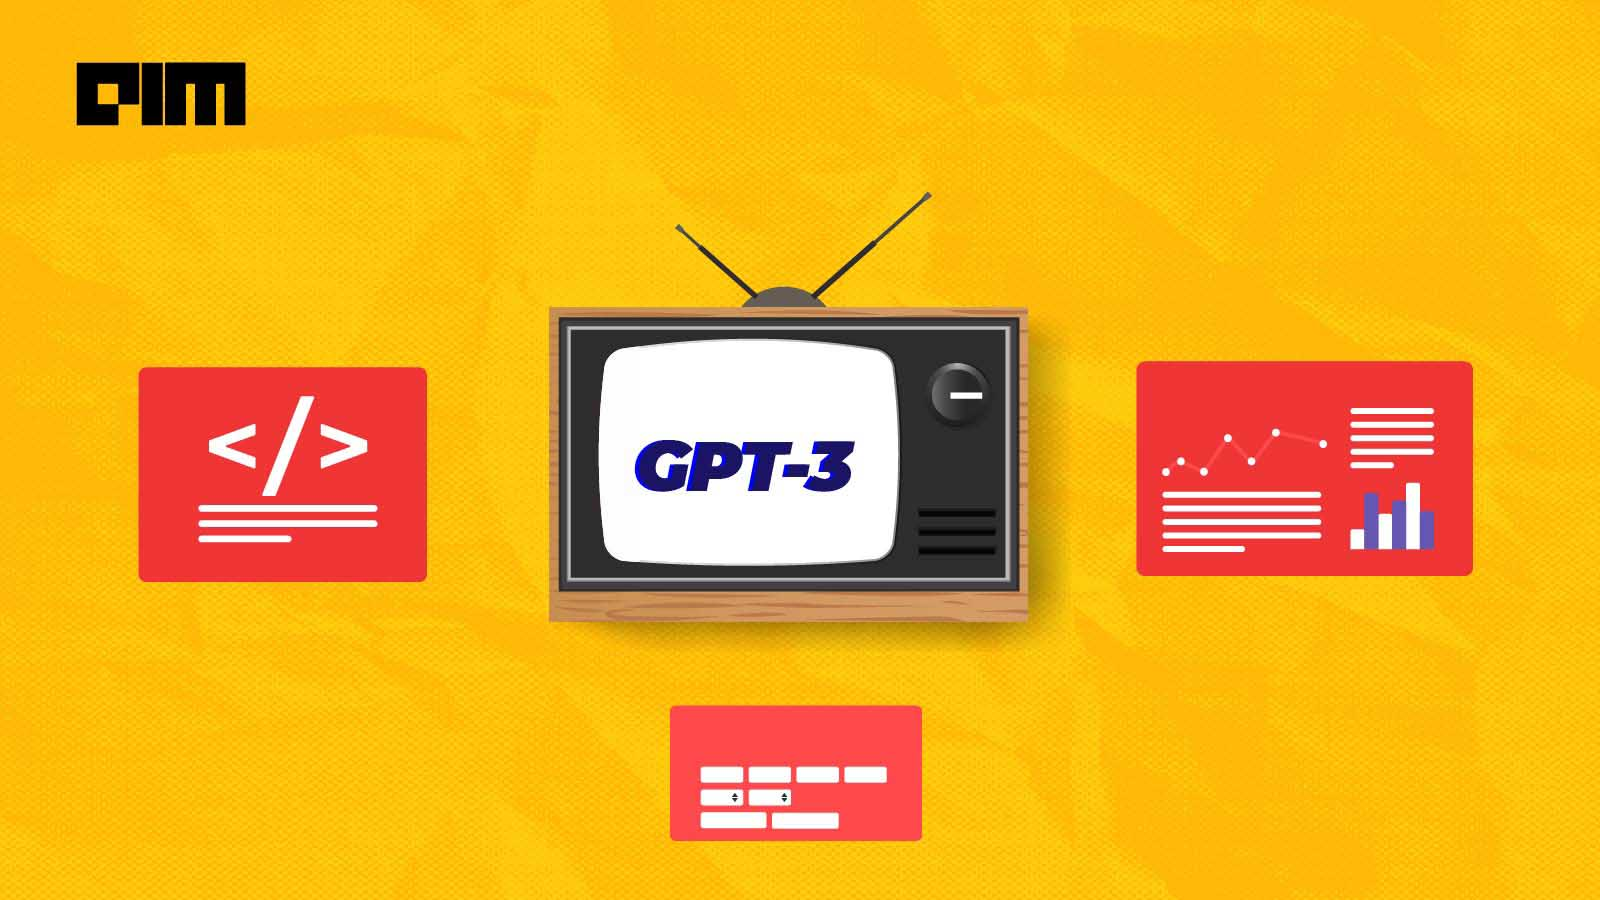 Top Free Resources To Learn GPT-3